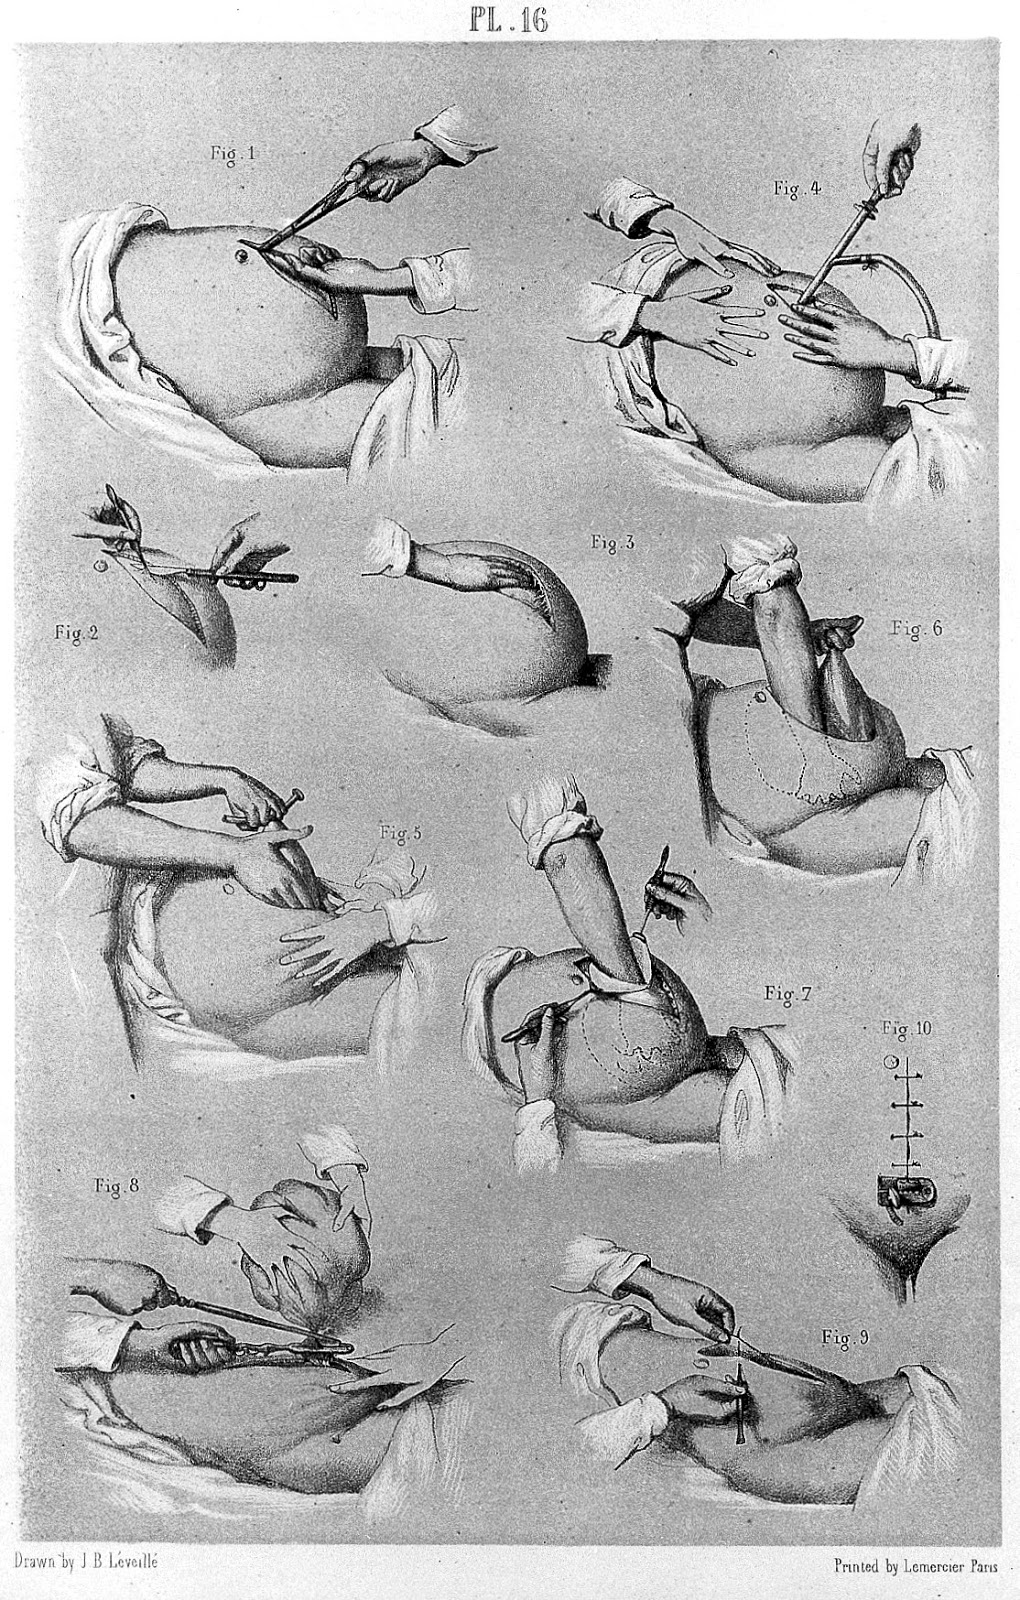 Early Medical Guides in New Spain